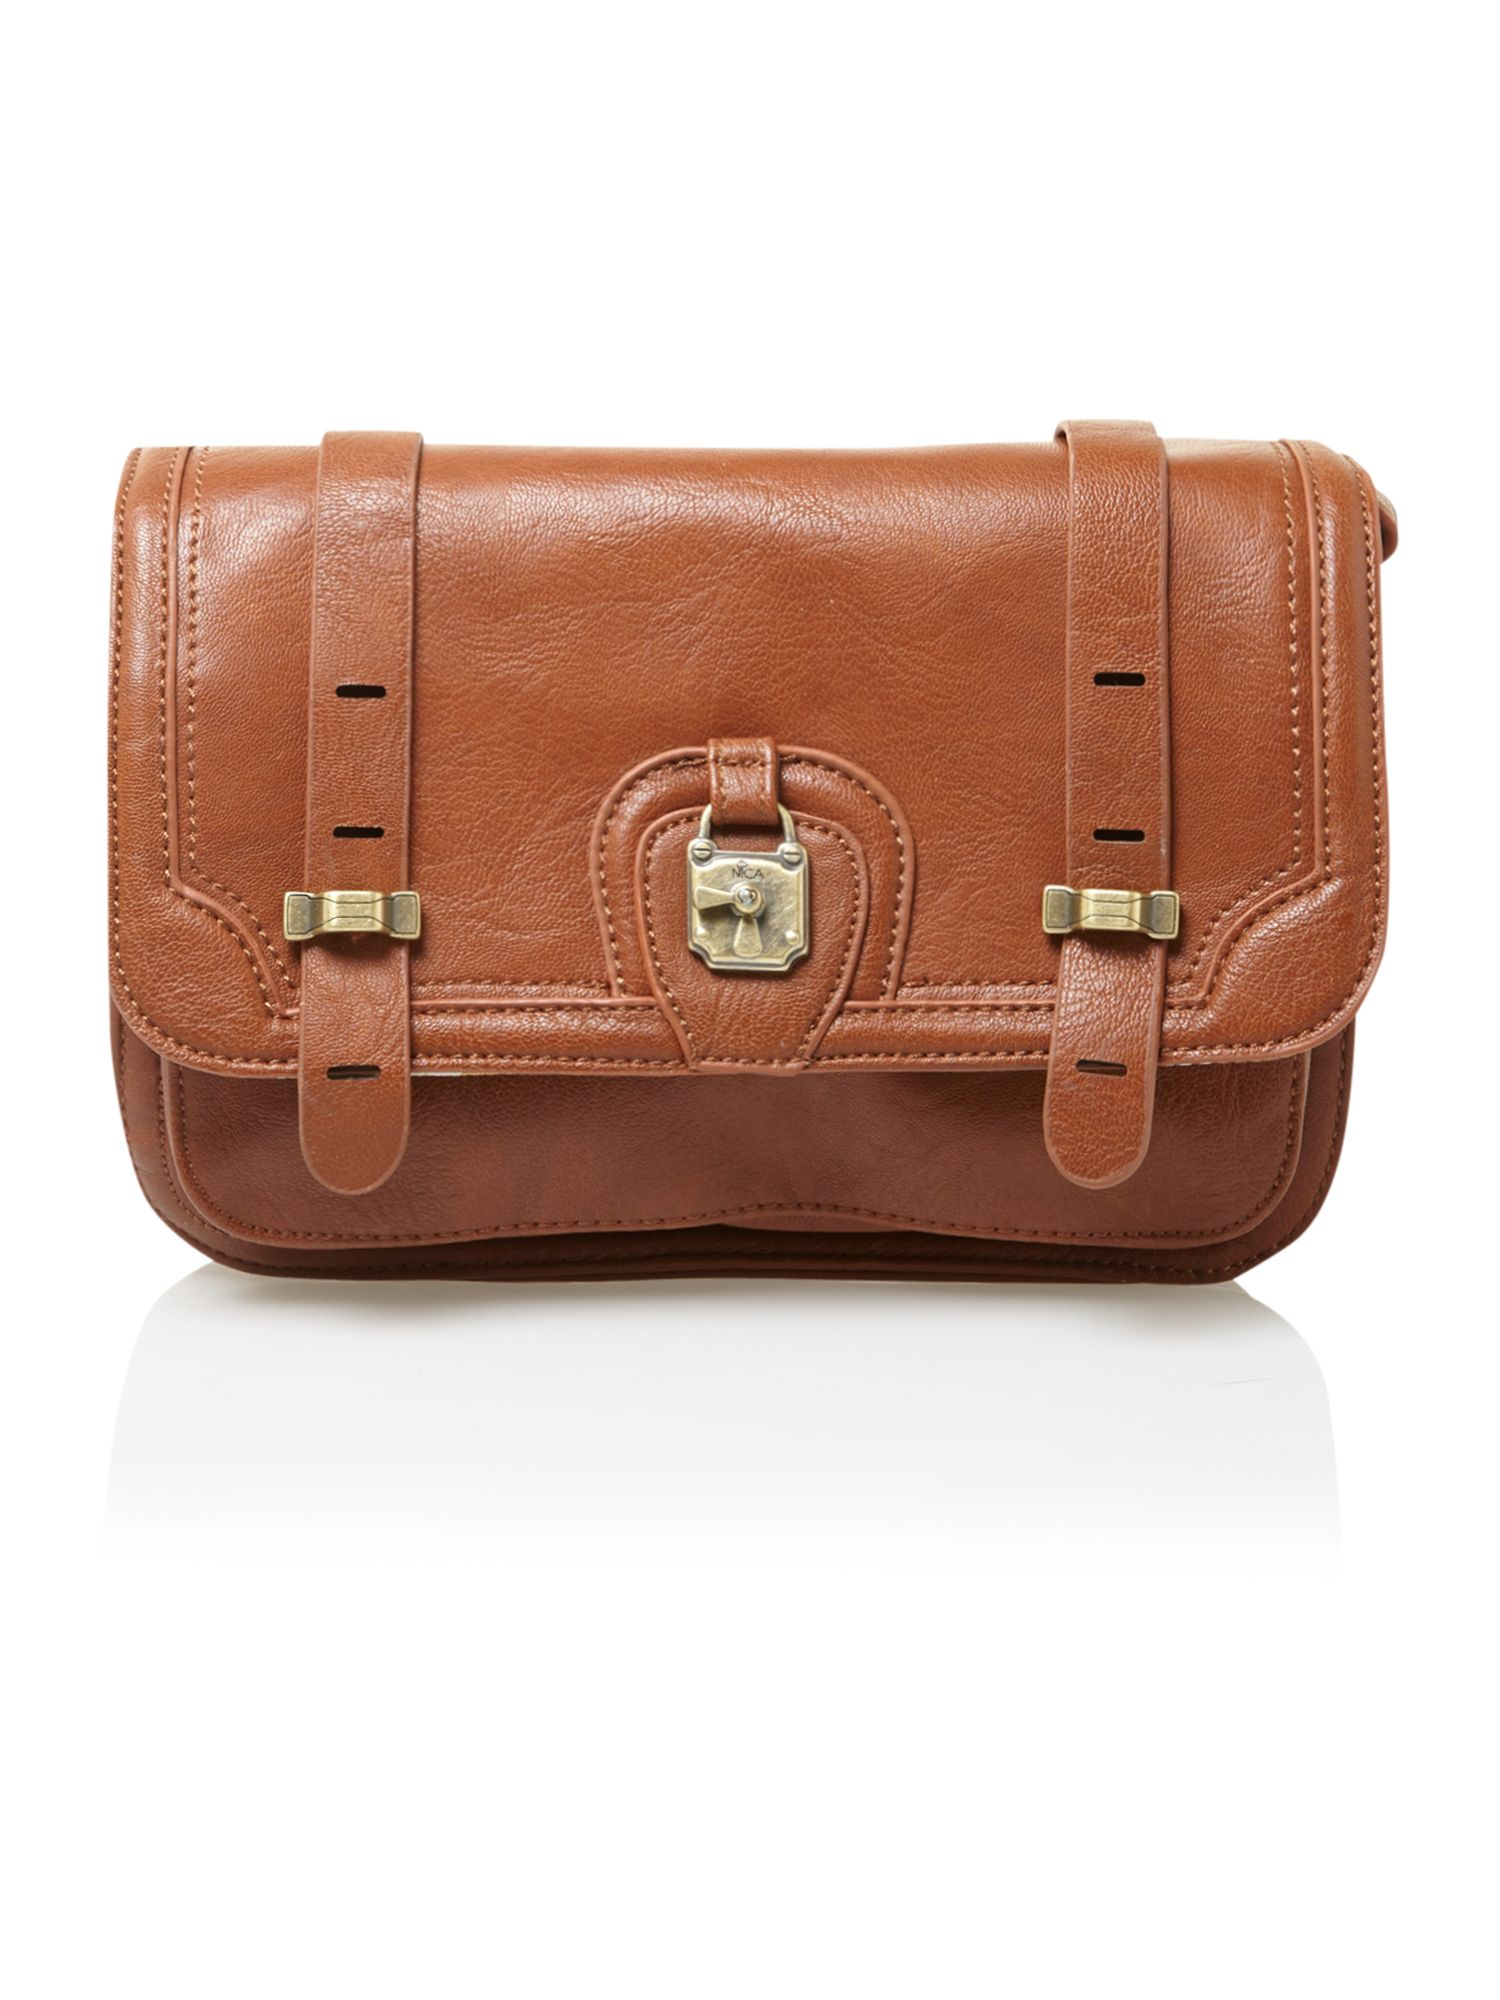 Small brown satchel bag